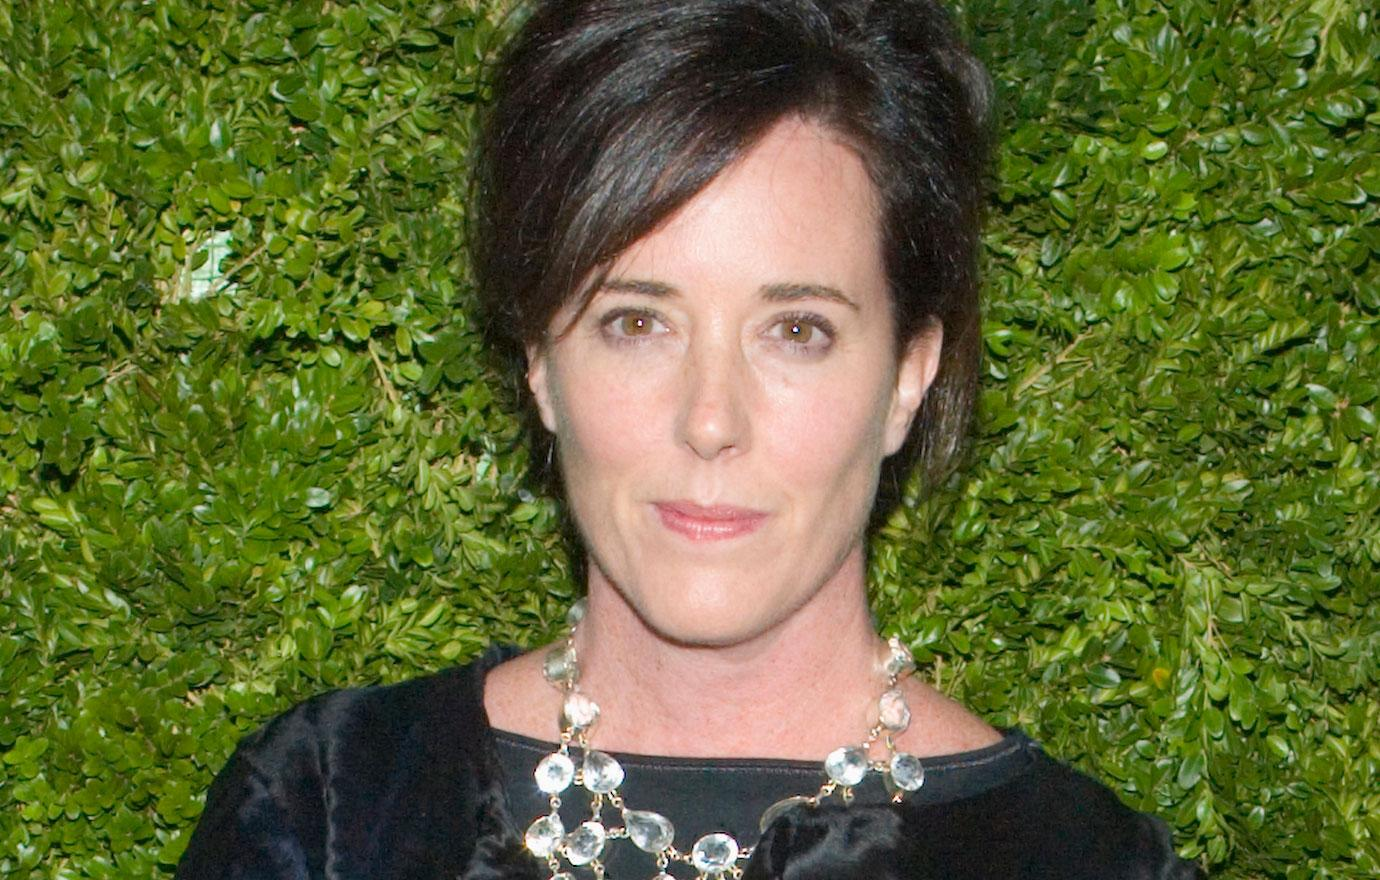 Kate Spade Sister Reta Saffo Claims She has Been Threatened